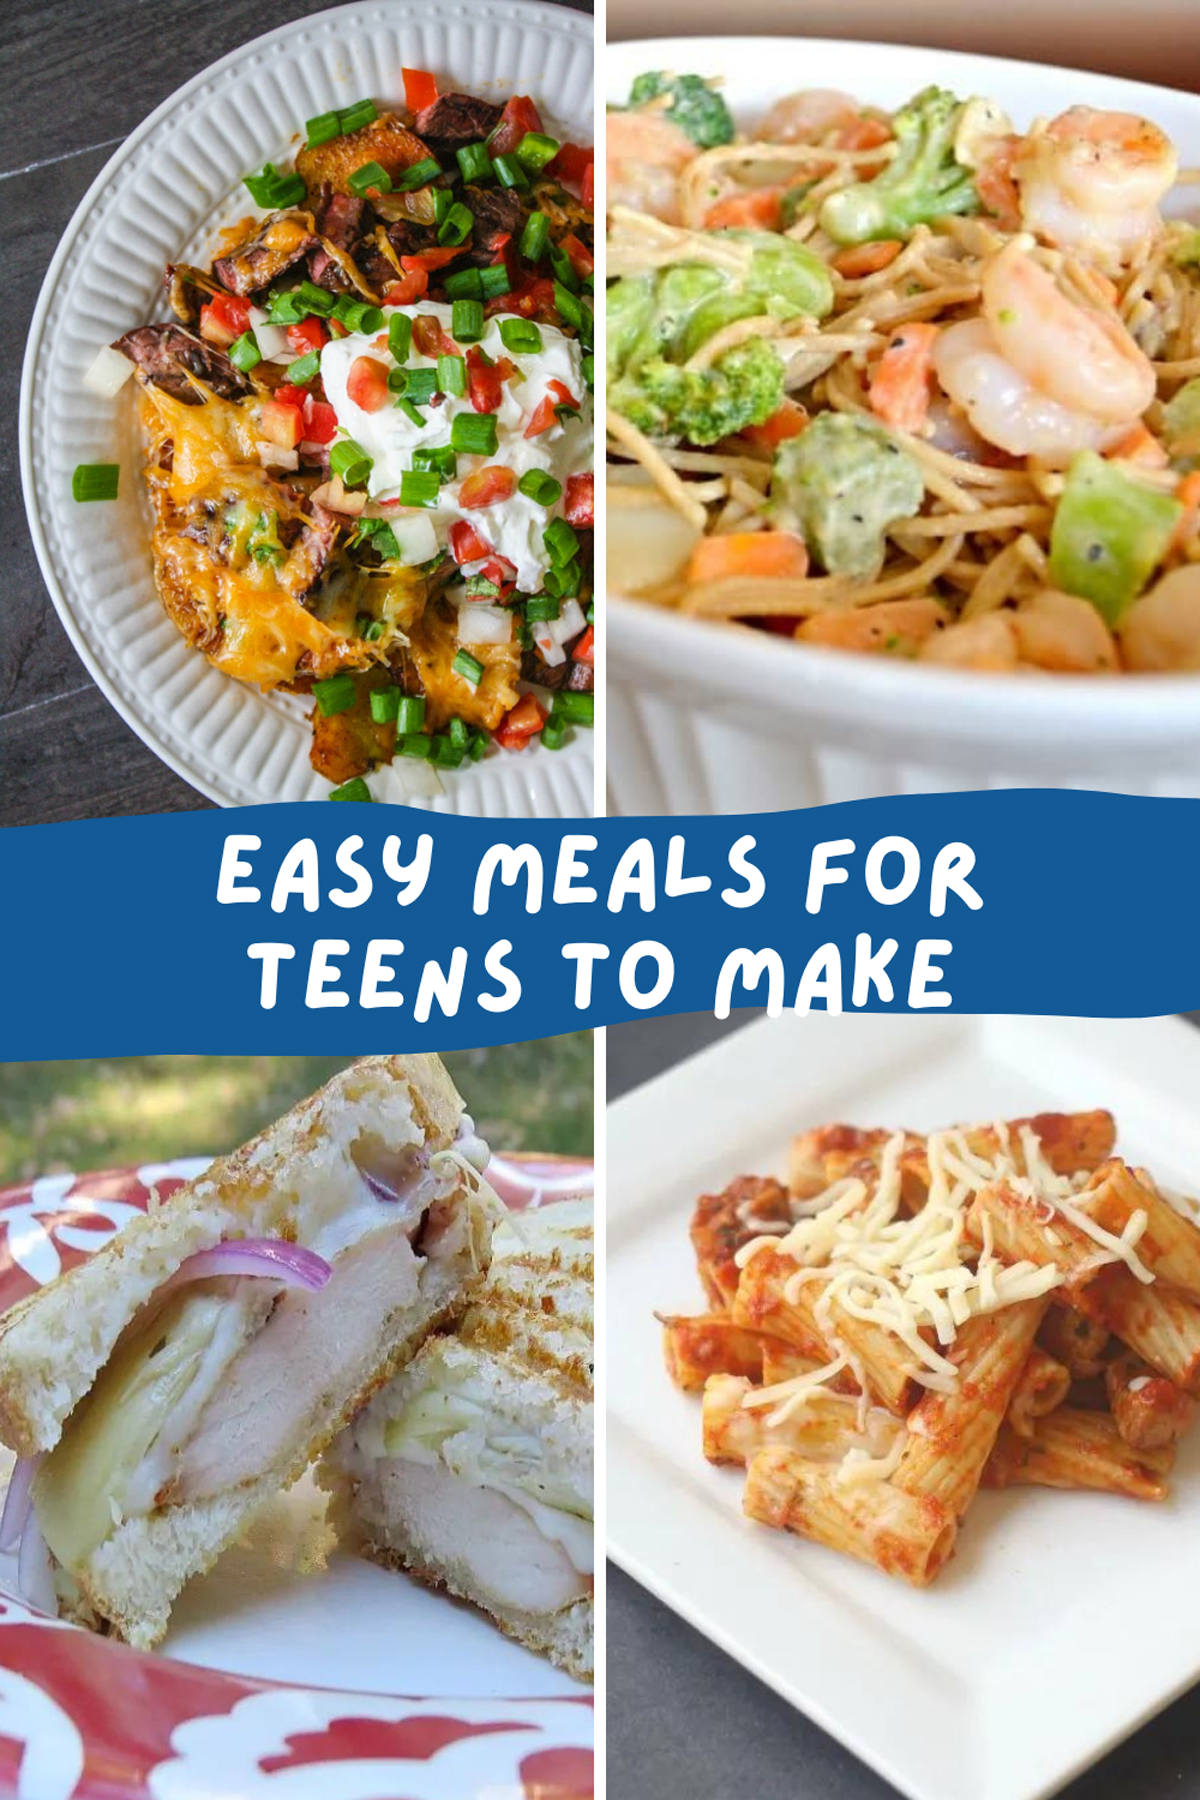 Easy Meals for Teens to Make